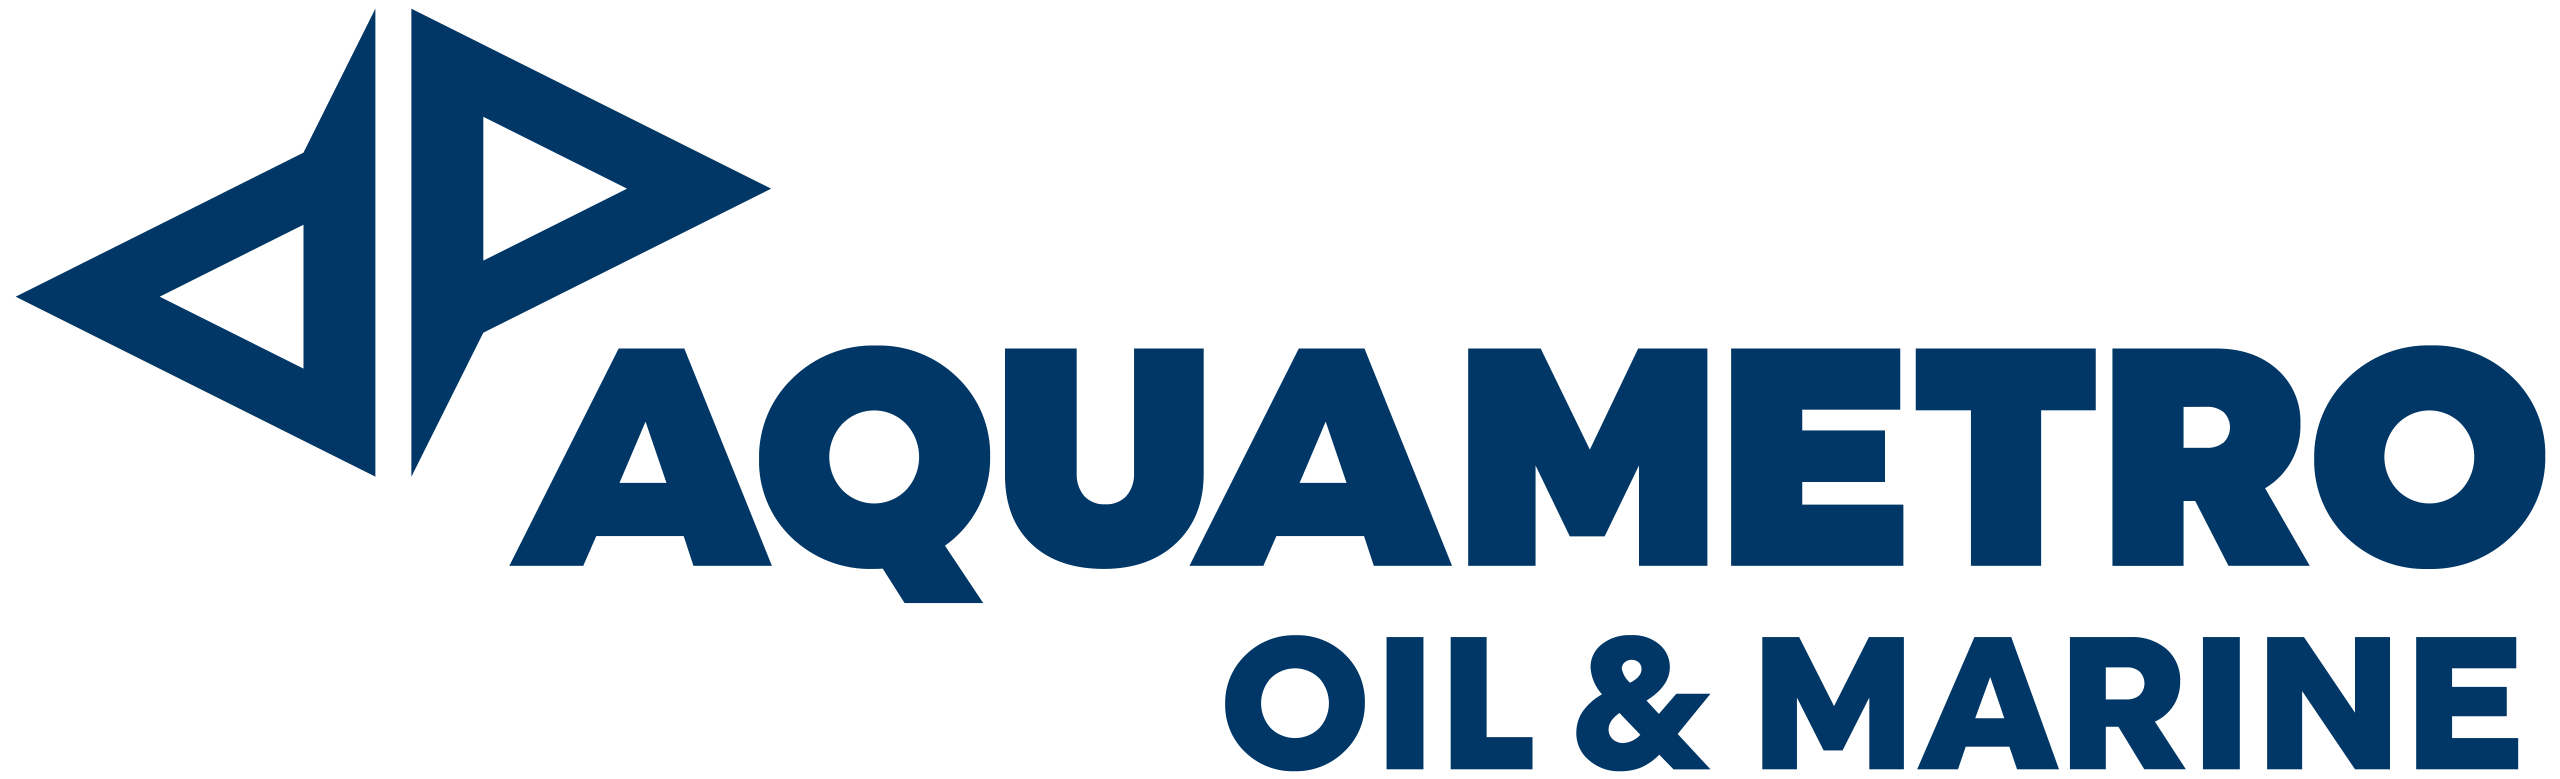 Aquametro Oil & Marine